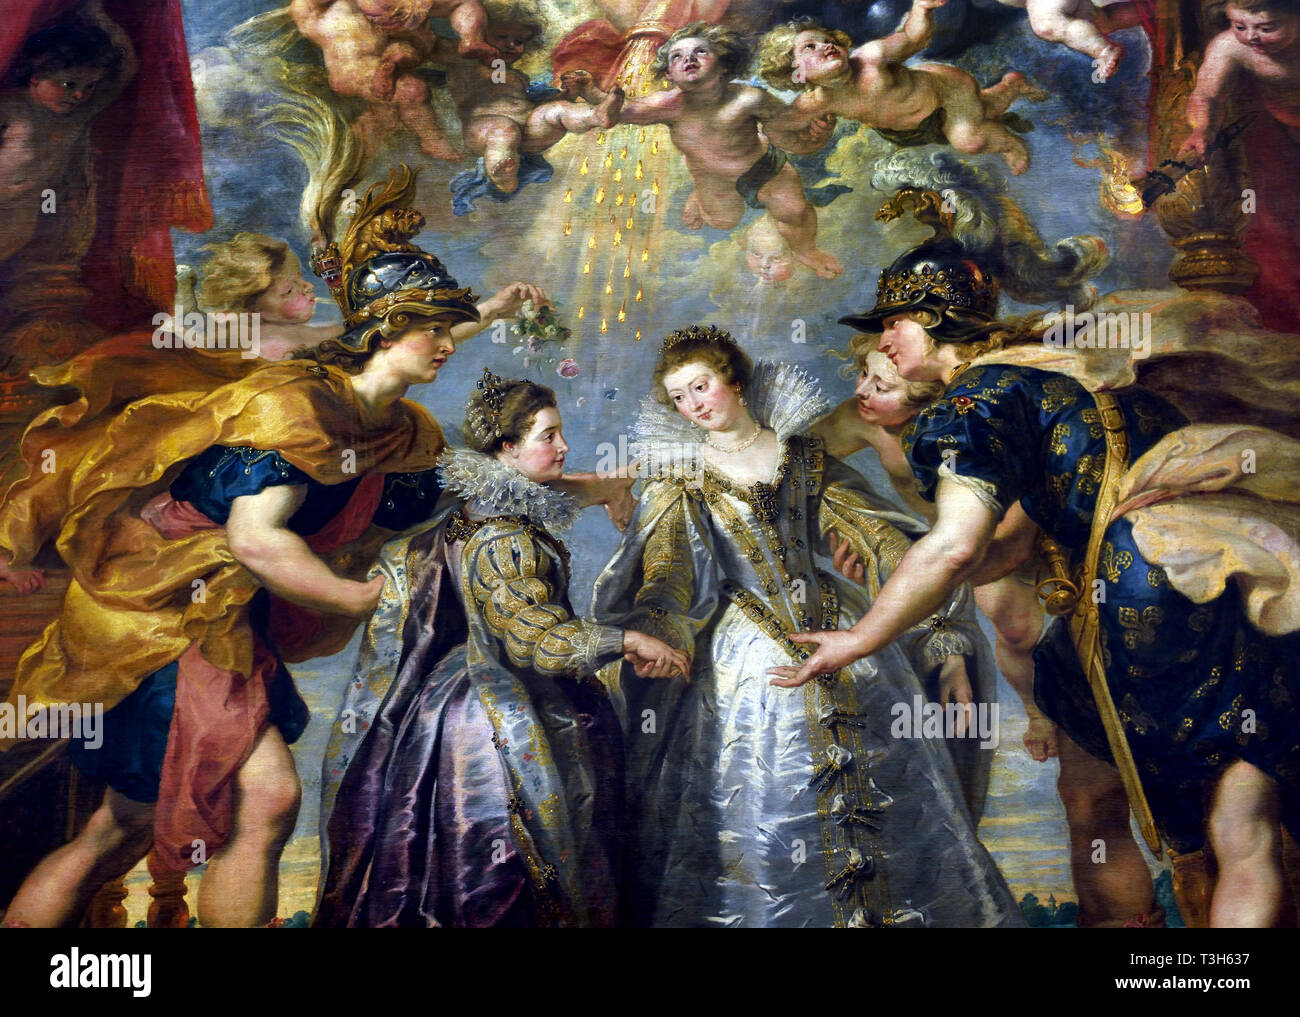 The Exchange of the Princesses at the Spanish Border - The Marie de' Medici Cycle 1622-1624  by Peter Paul Rubens commissioned by Queen Marie de' Medici, widow of King Henry IV of France, for the Luxembourg Palace in Paris, - Stock Image